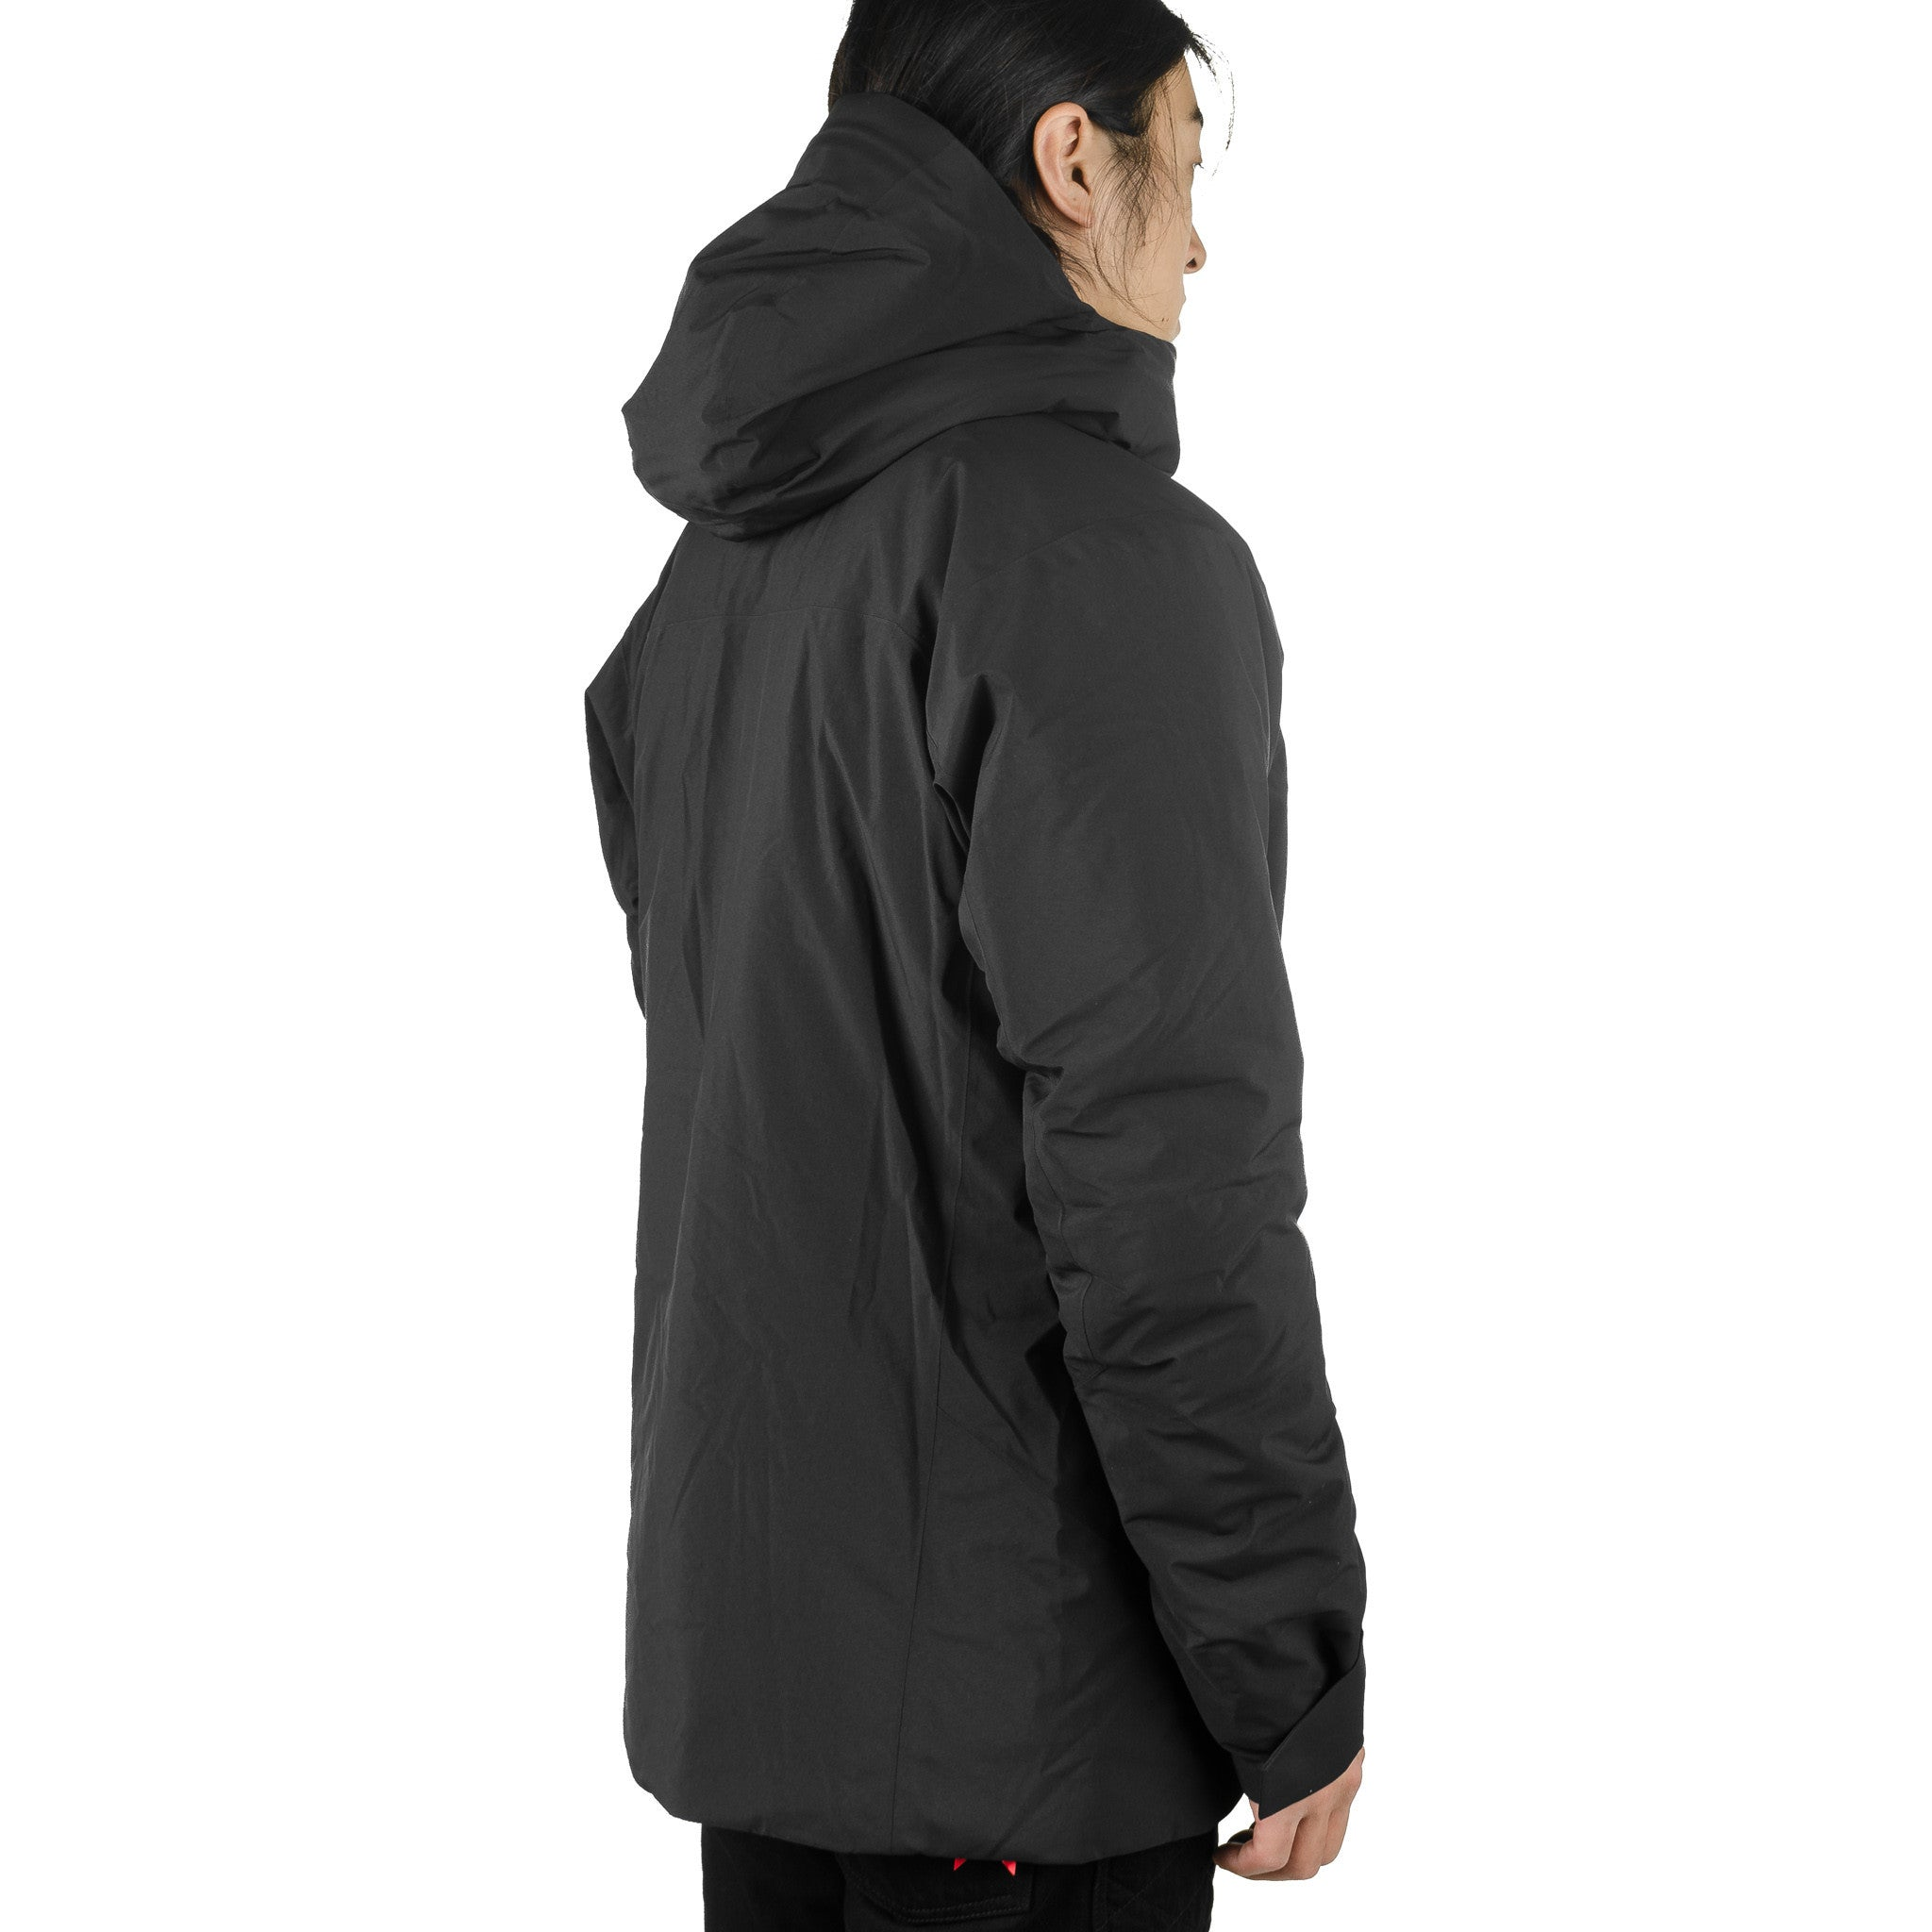 Koda Jacket Black